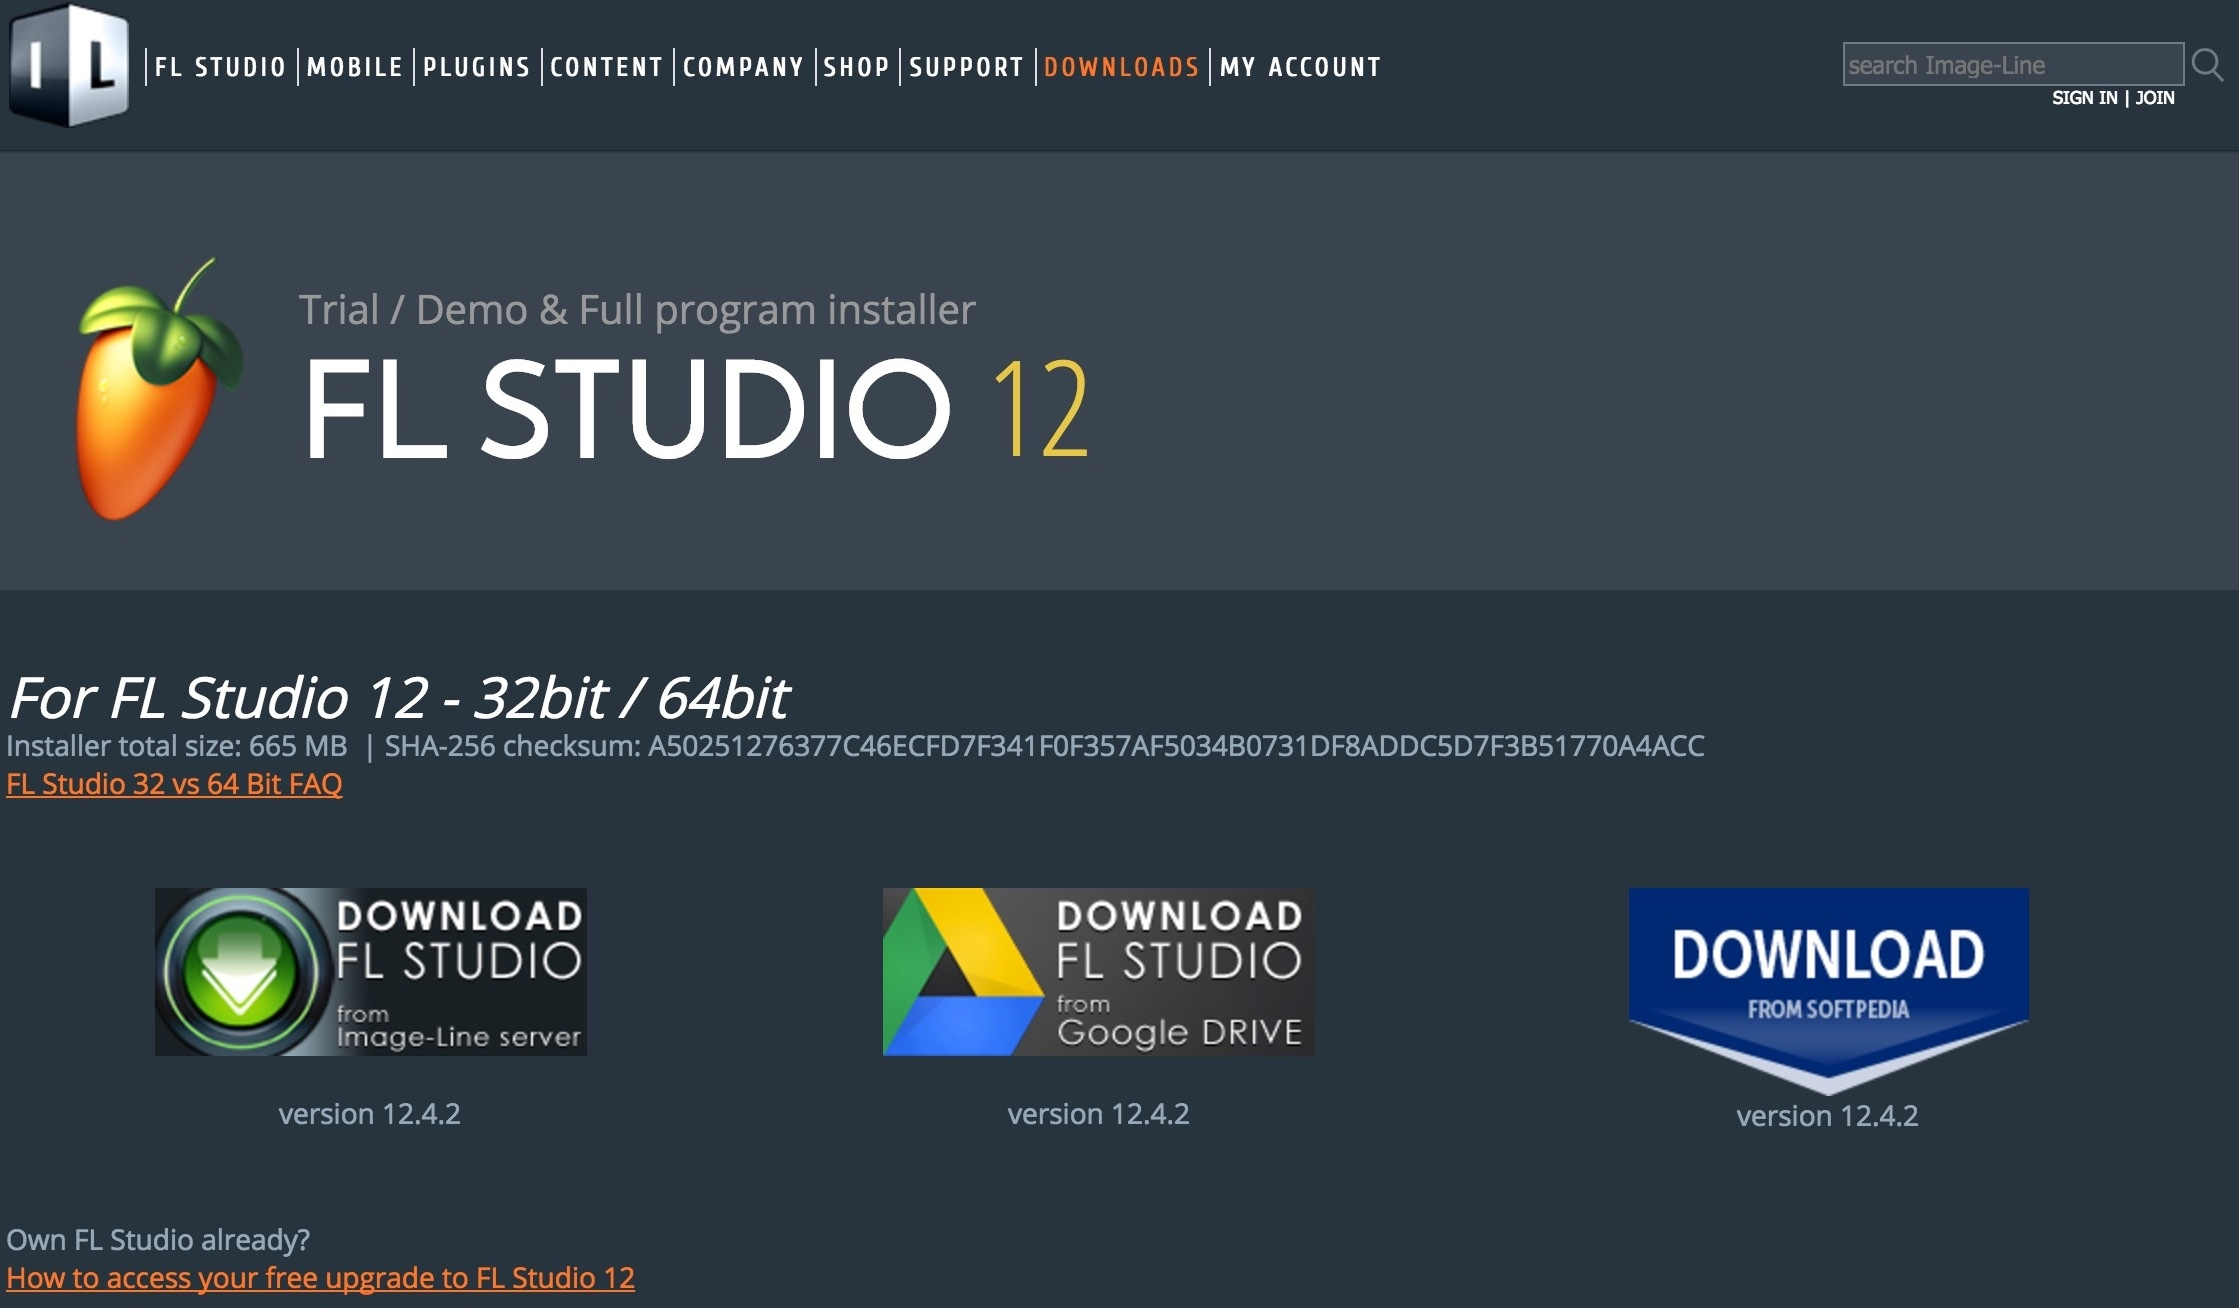 fl_studio_trial